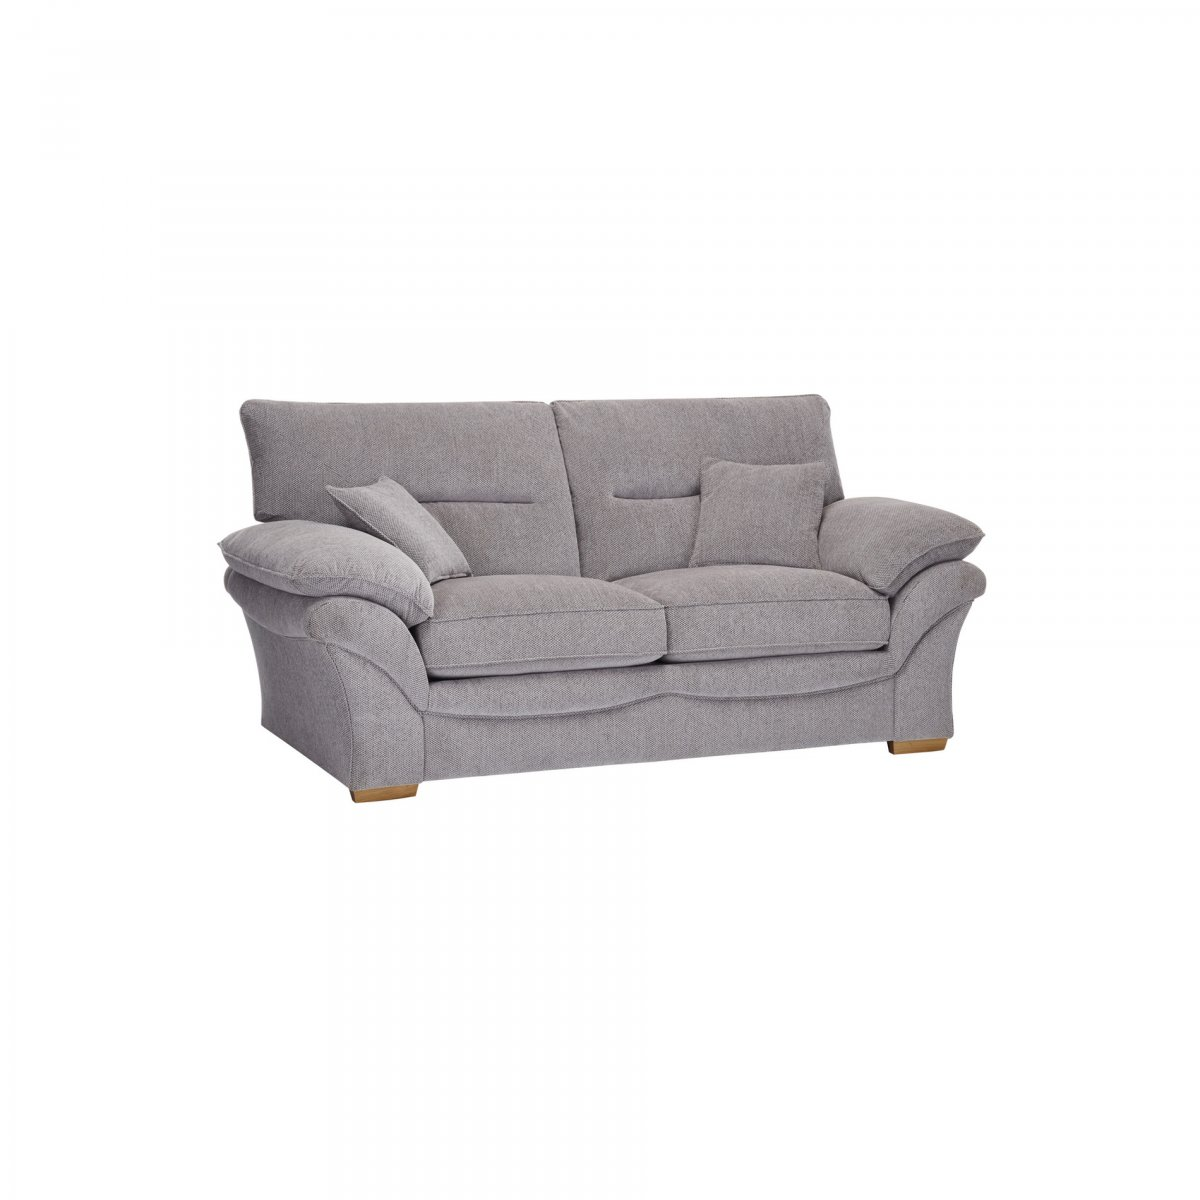 Chloe 2 Seater Sofa Bed In Logan Fabric Grey